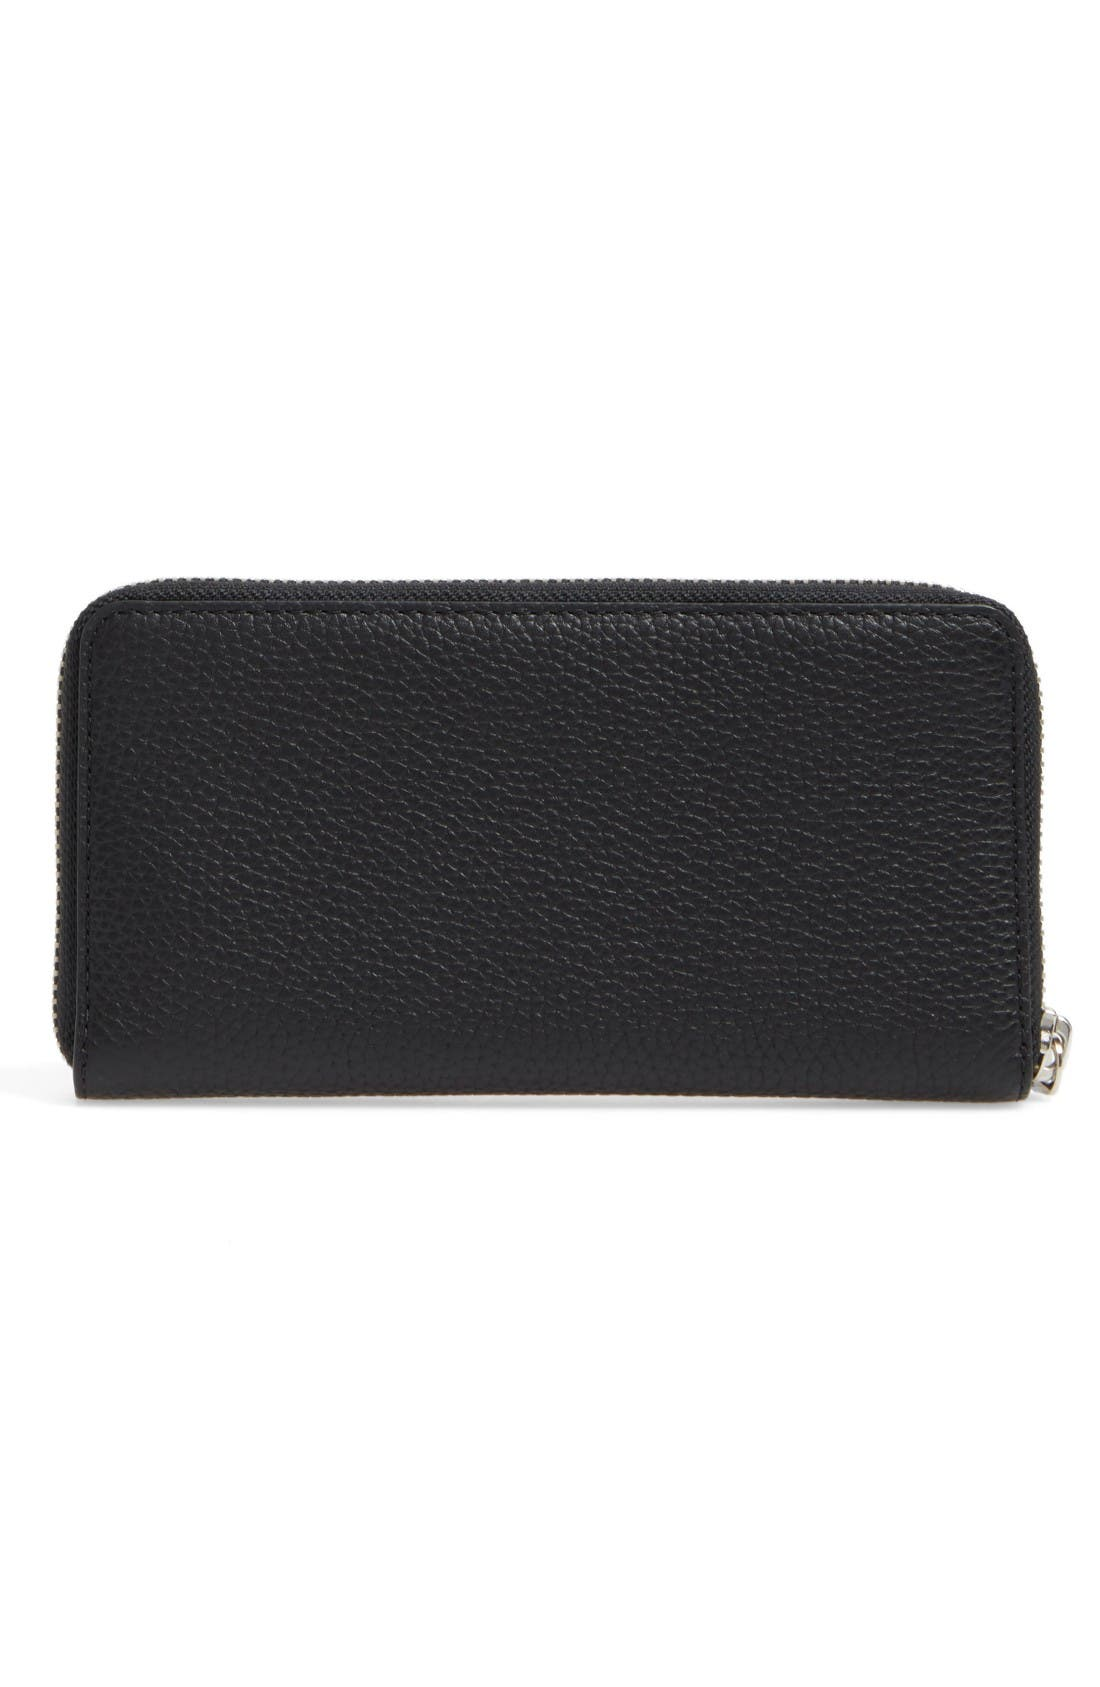 Vertical Zippy Wallet,                             Alternate thumbnail 4, color,                             Black